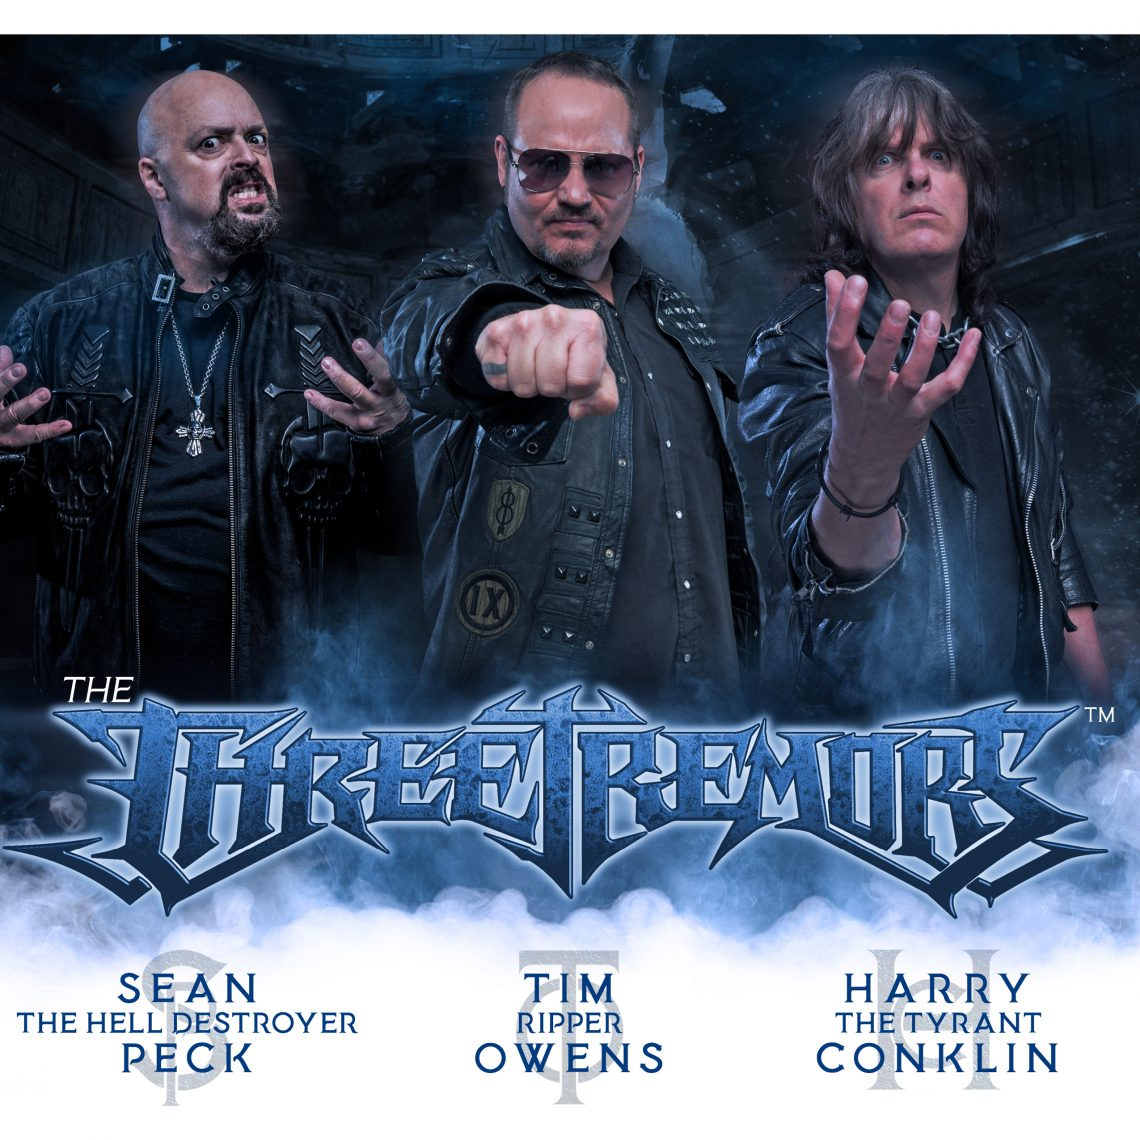 THE THREE TREMORS (feat. Tim 'Ripper' Owens, Sean Peck, Harry Conklin release their new album 18th Jan. 2019